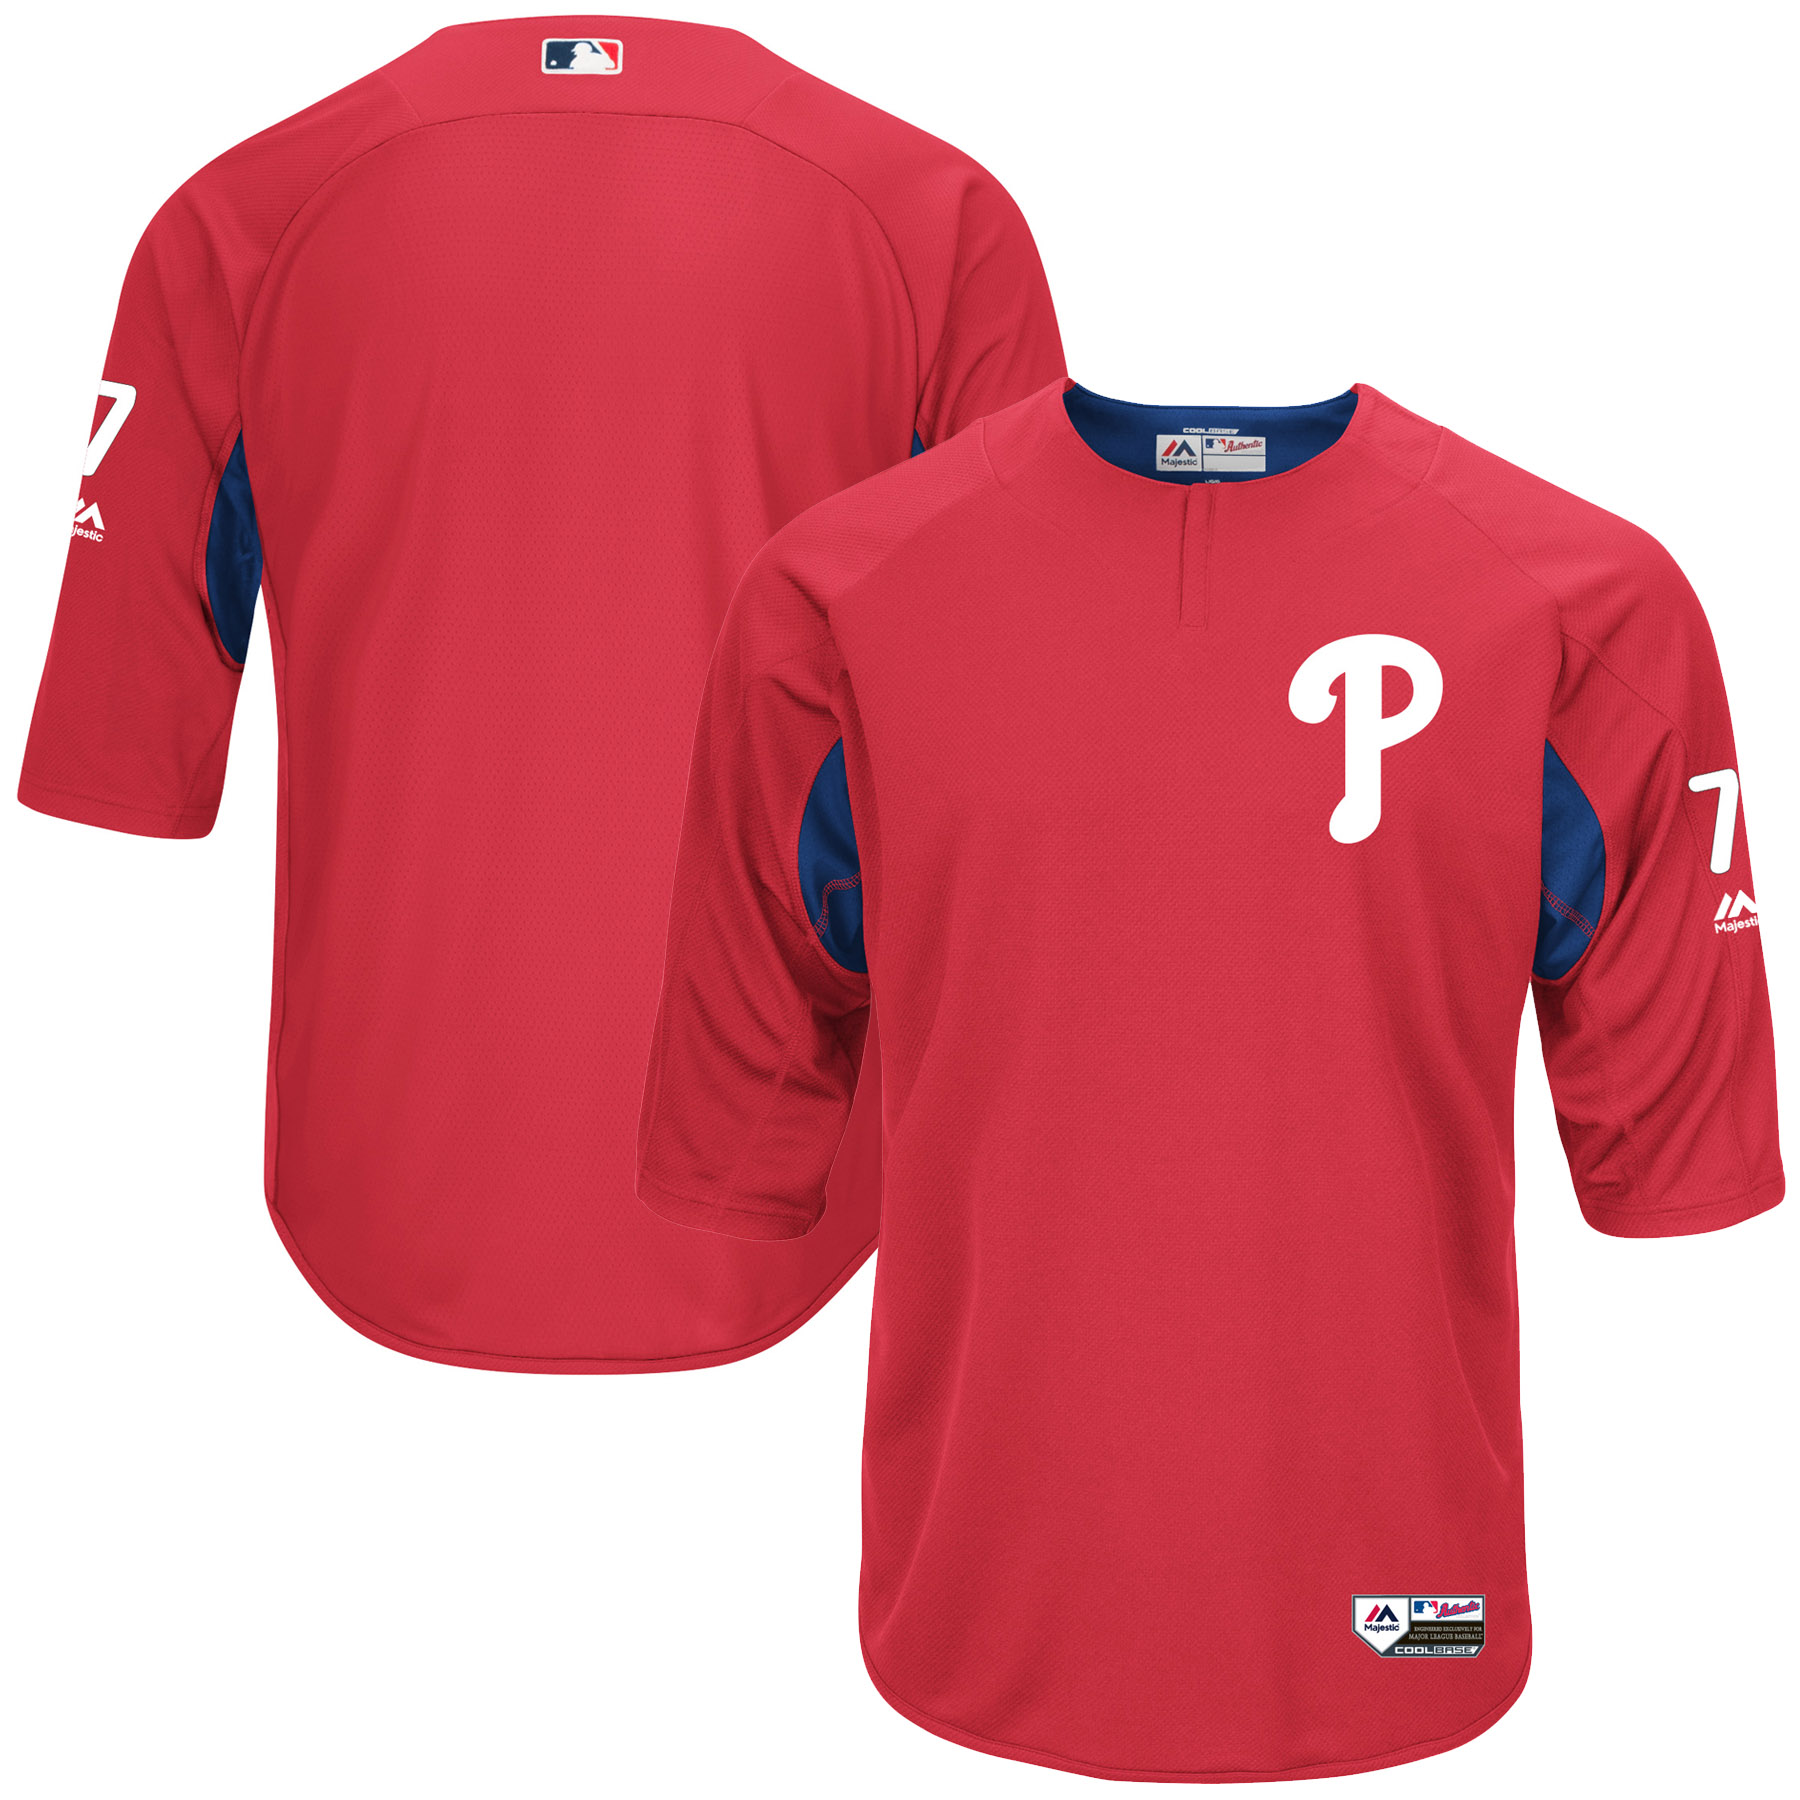 Men's Majestic Maikel Franco Red/Royal Philadelphia Phillies Authentic Collection On-Field 3/4-Sleeve Player Batting Practice Jersey